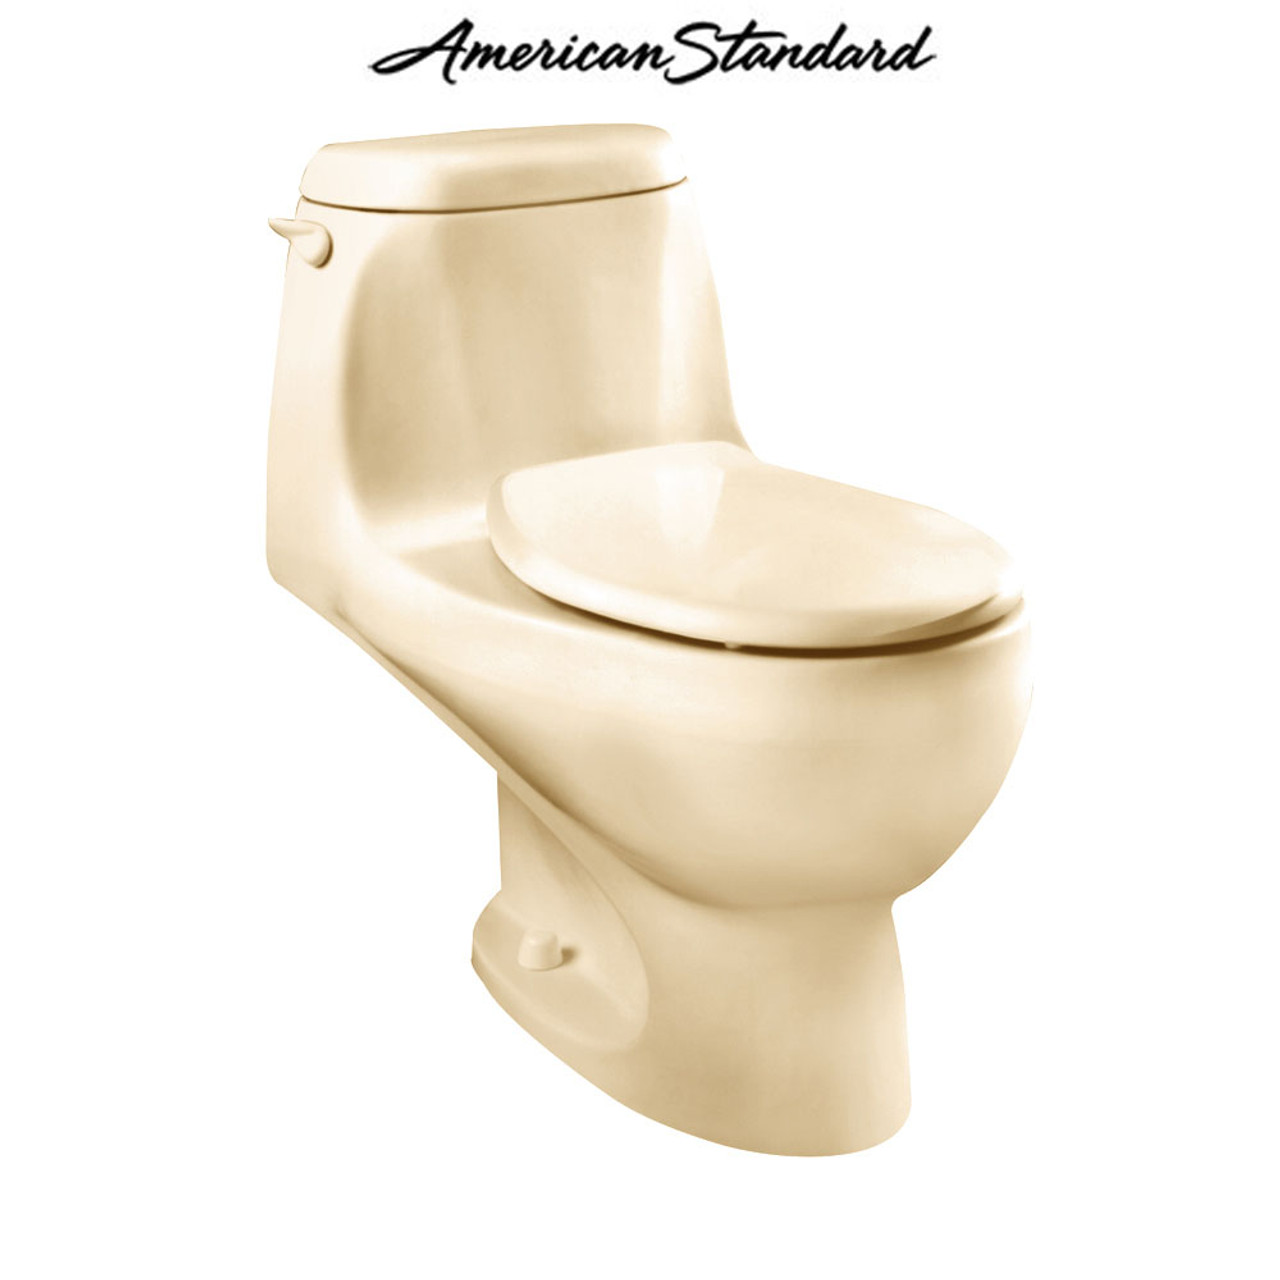 Astonishing American Standard 2097 014 021 Savona Elongated One Piece Toilet Ibusinesslaw Wood Chair Design Ideas Ibusinesslaworg